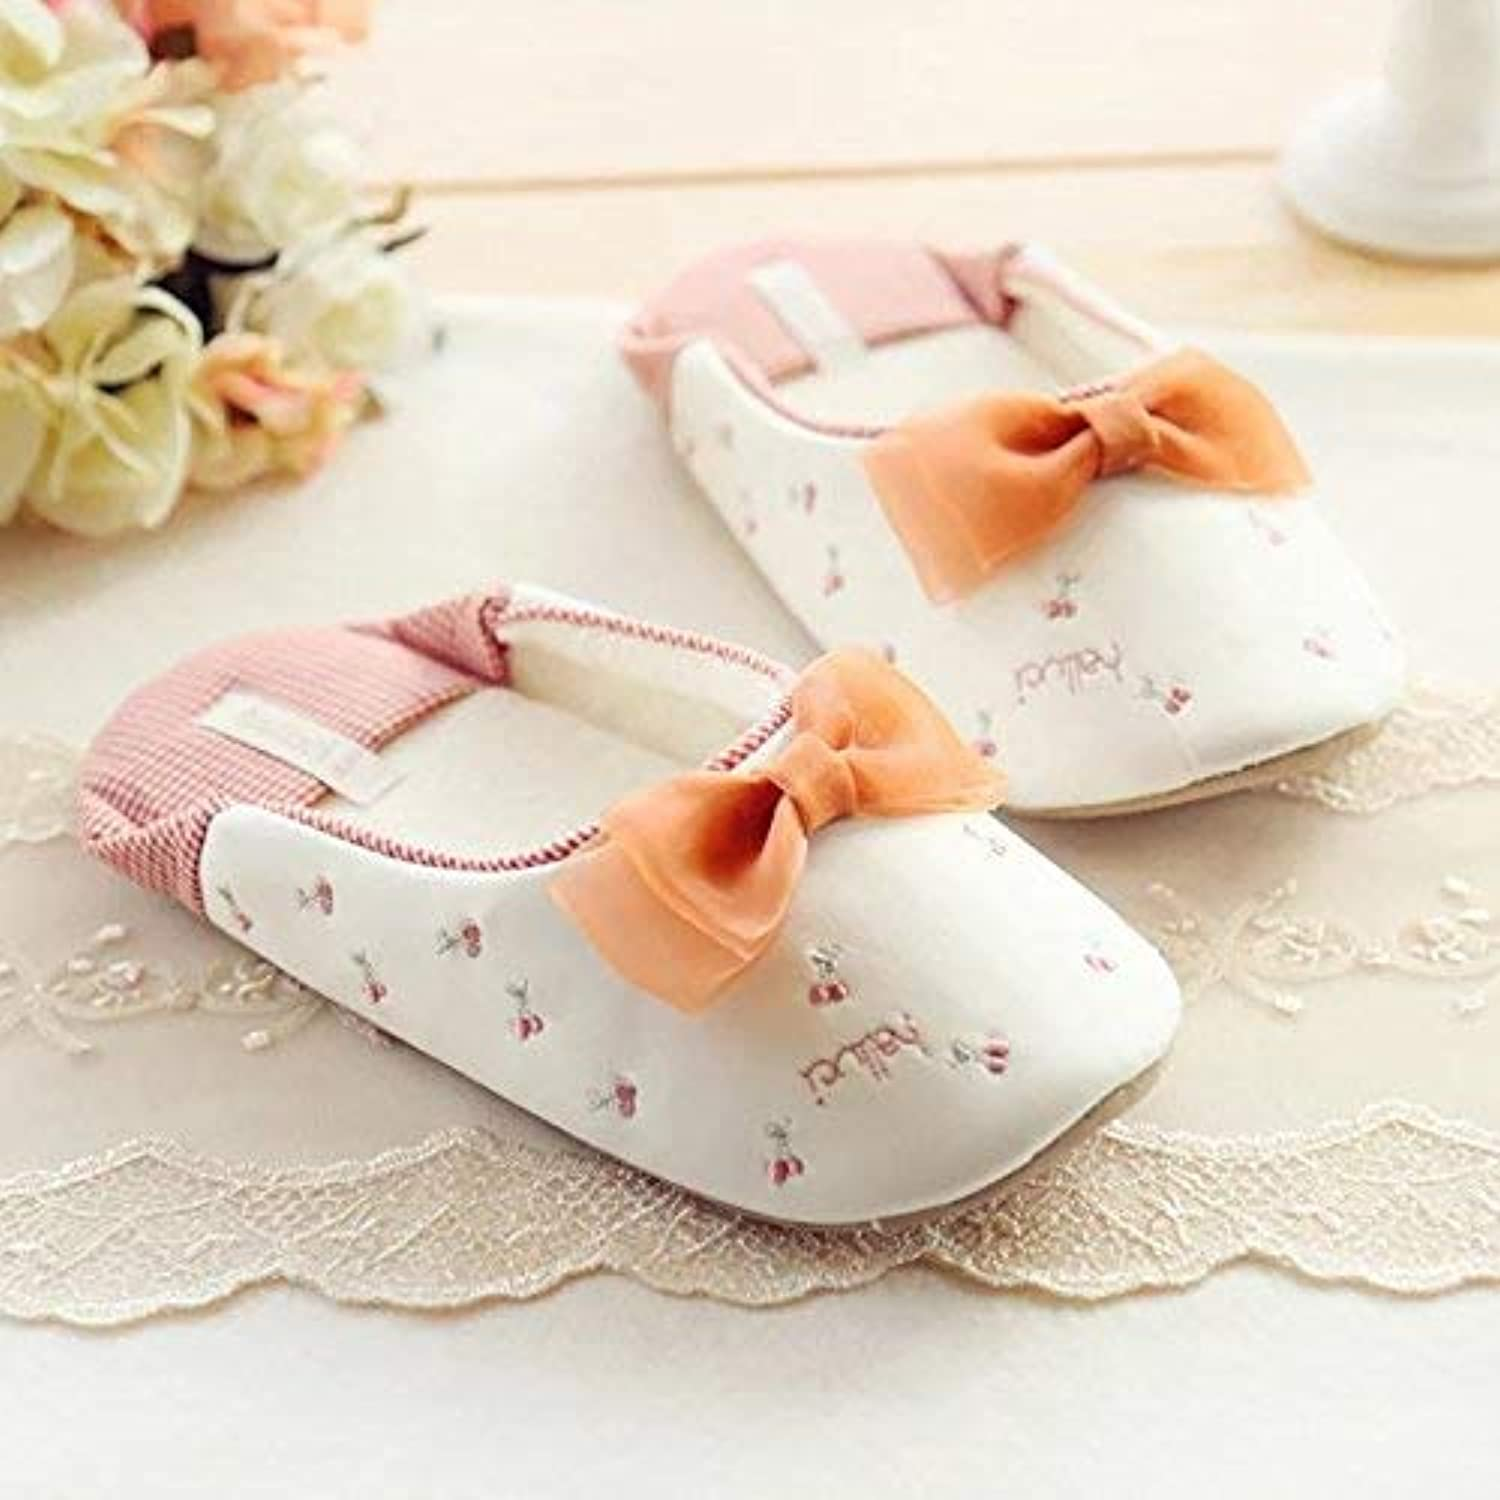 Lady Slippers Woman Spring Summer Fall Casual Slippers Ladies Series Bow Slip Slippers Cute Cherry Pattern Girlish Comfortable Indoor shoes